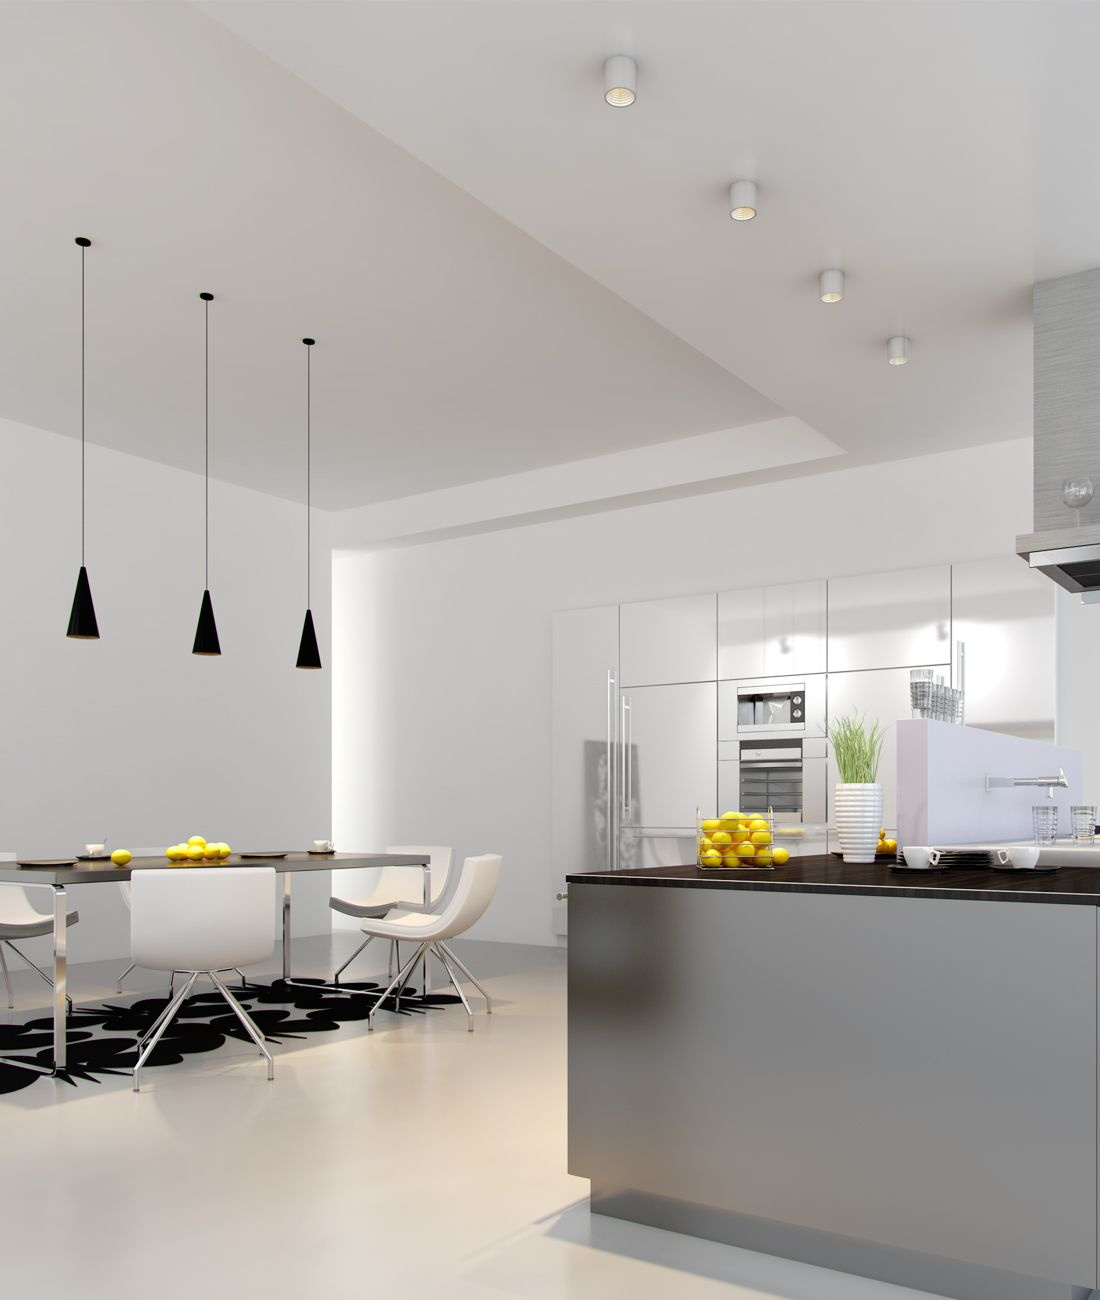 Surface mount light L600 and pendant light P97L in kitchen applicati ...